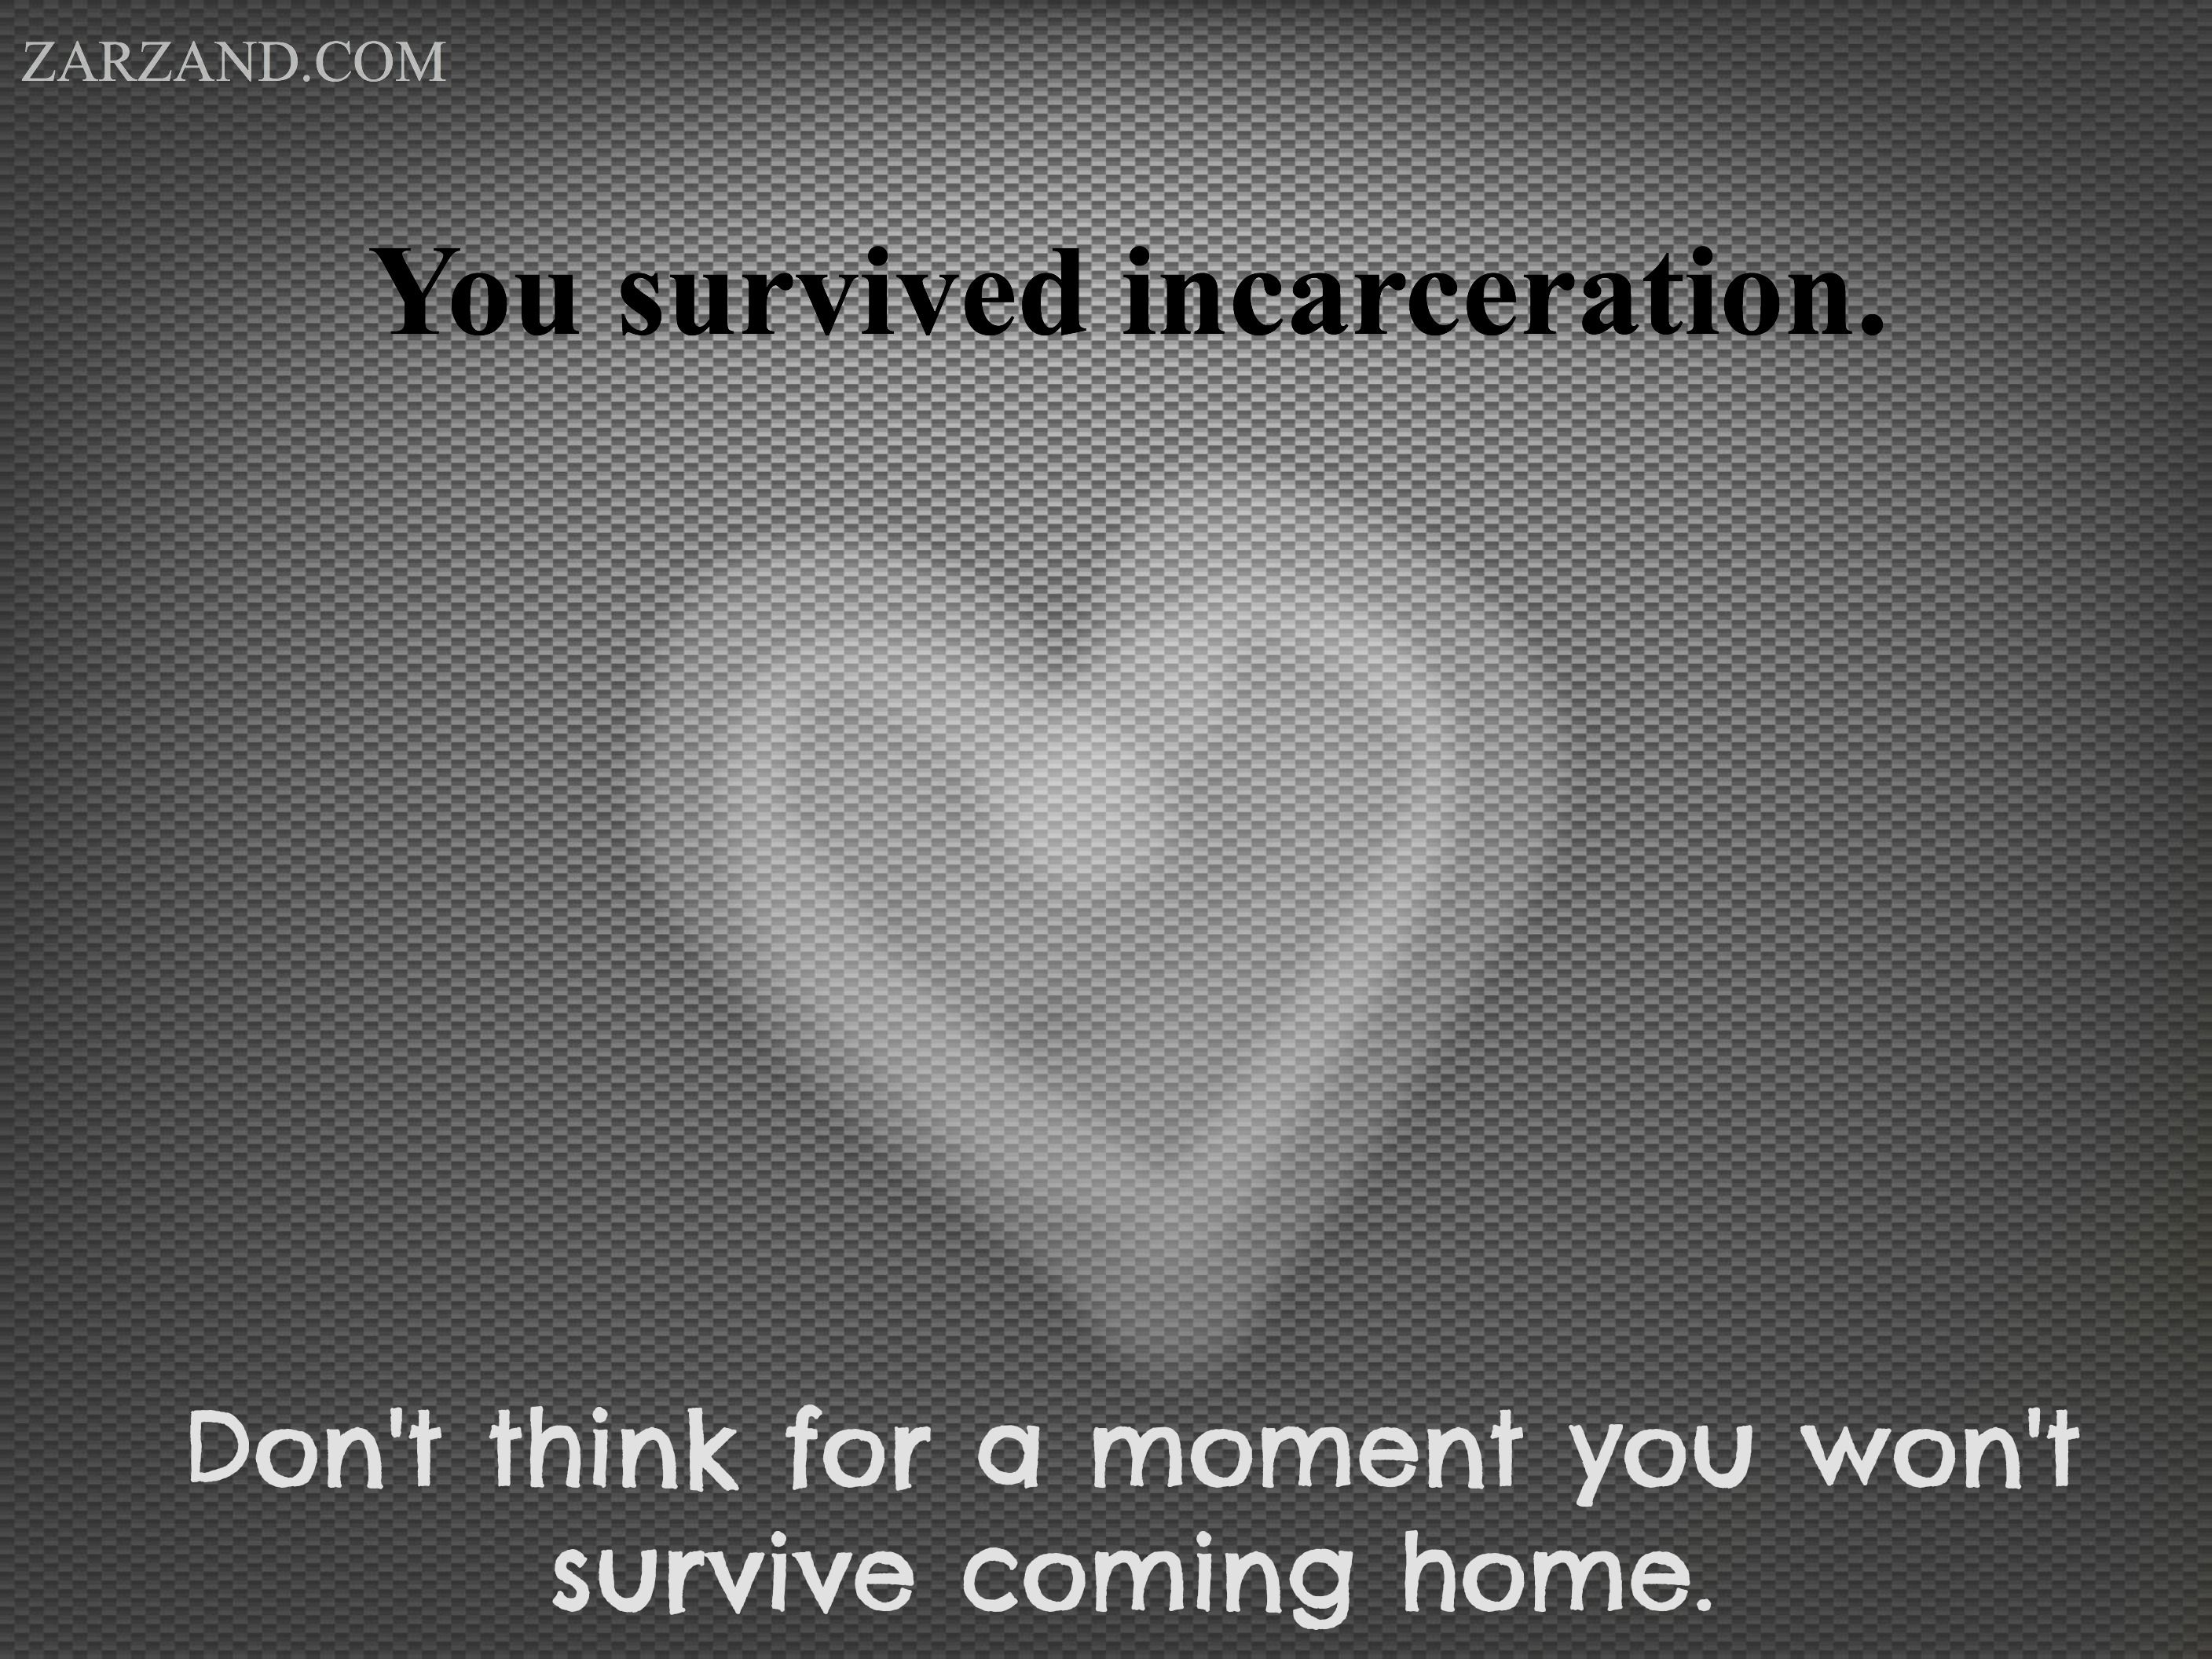 Prison Inmate Incarceration Strongprisonwivescom Transitioning Home